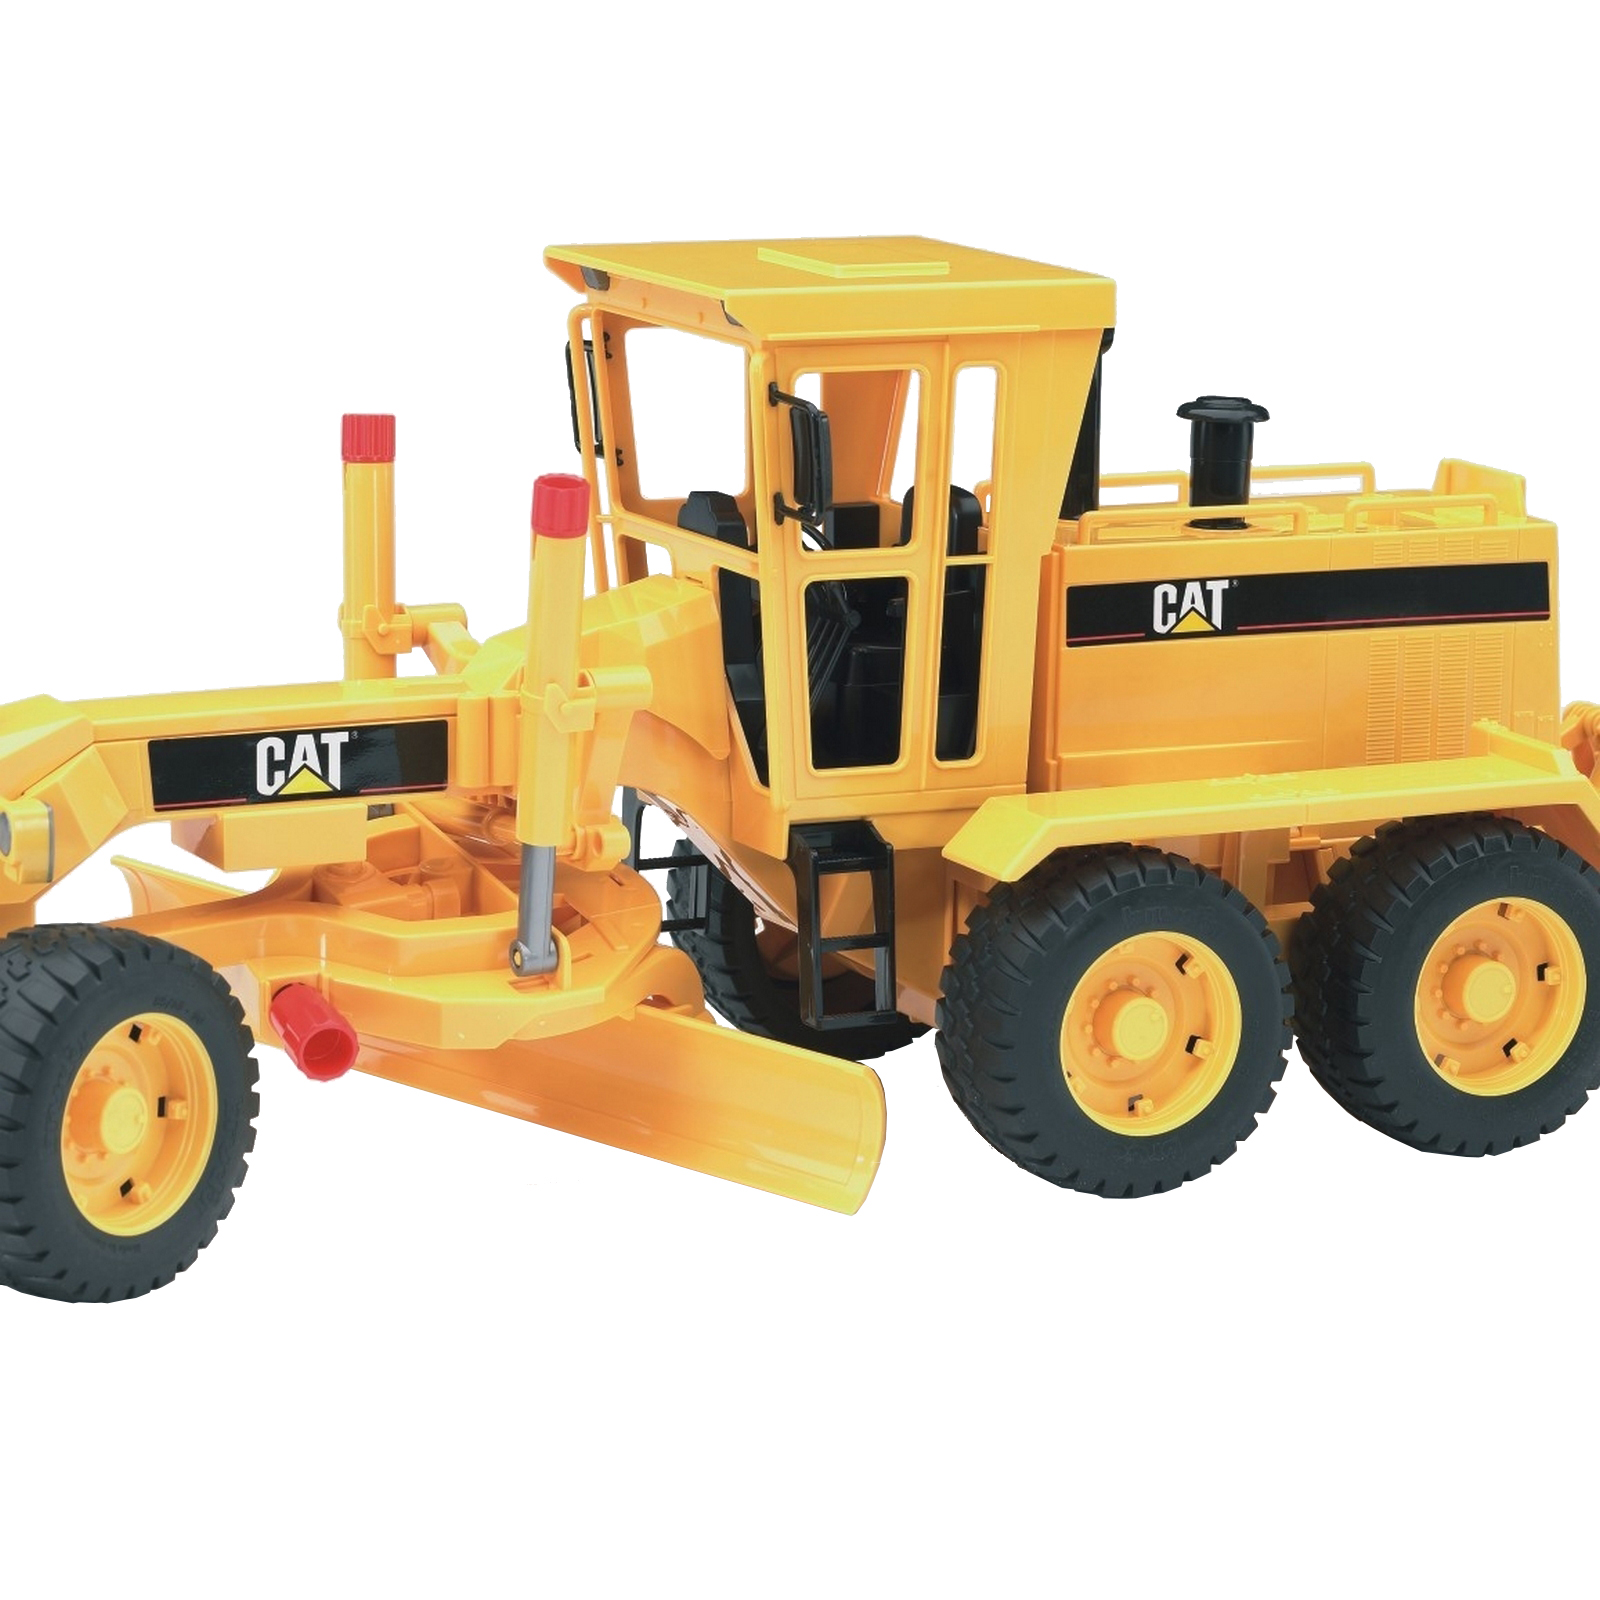 Bruder Construction Toys For Boys : Bruder toys scale model construction vehicle